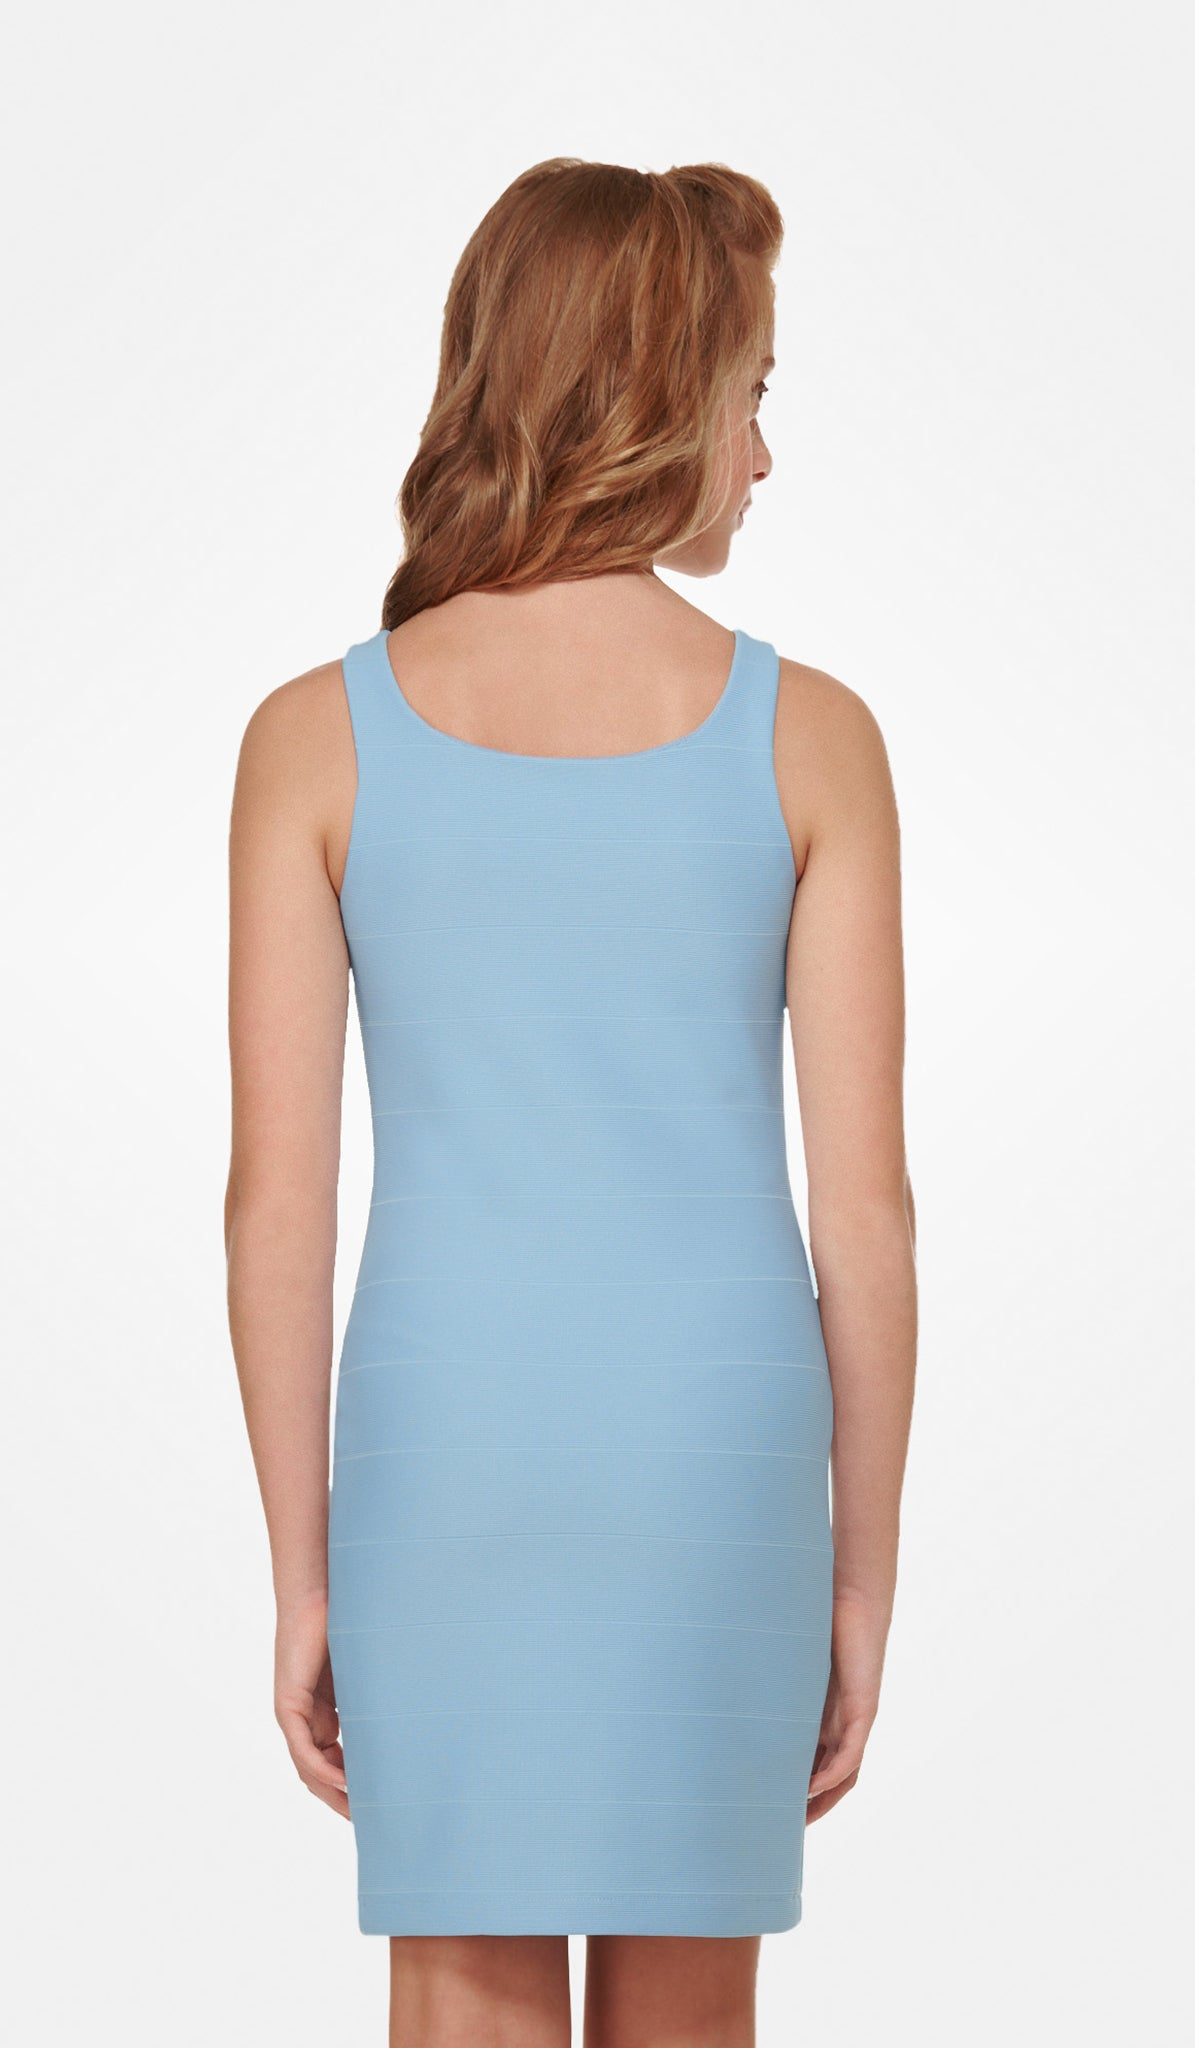 The Sally Miller Stacey Dress - Sky textured knit bodycon bandage dress